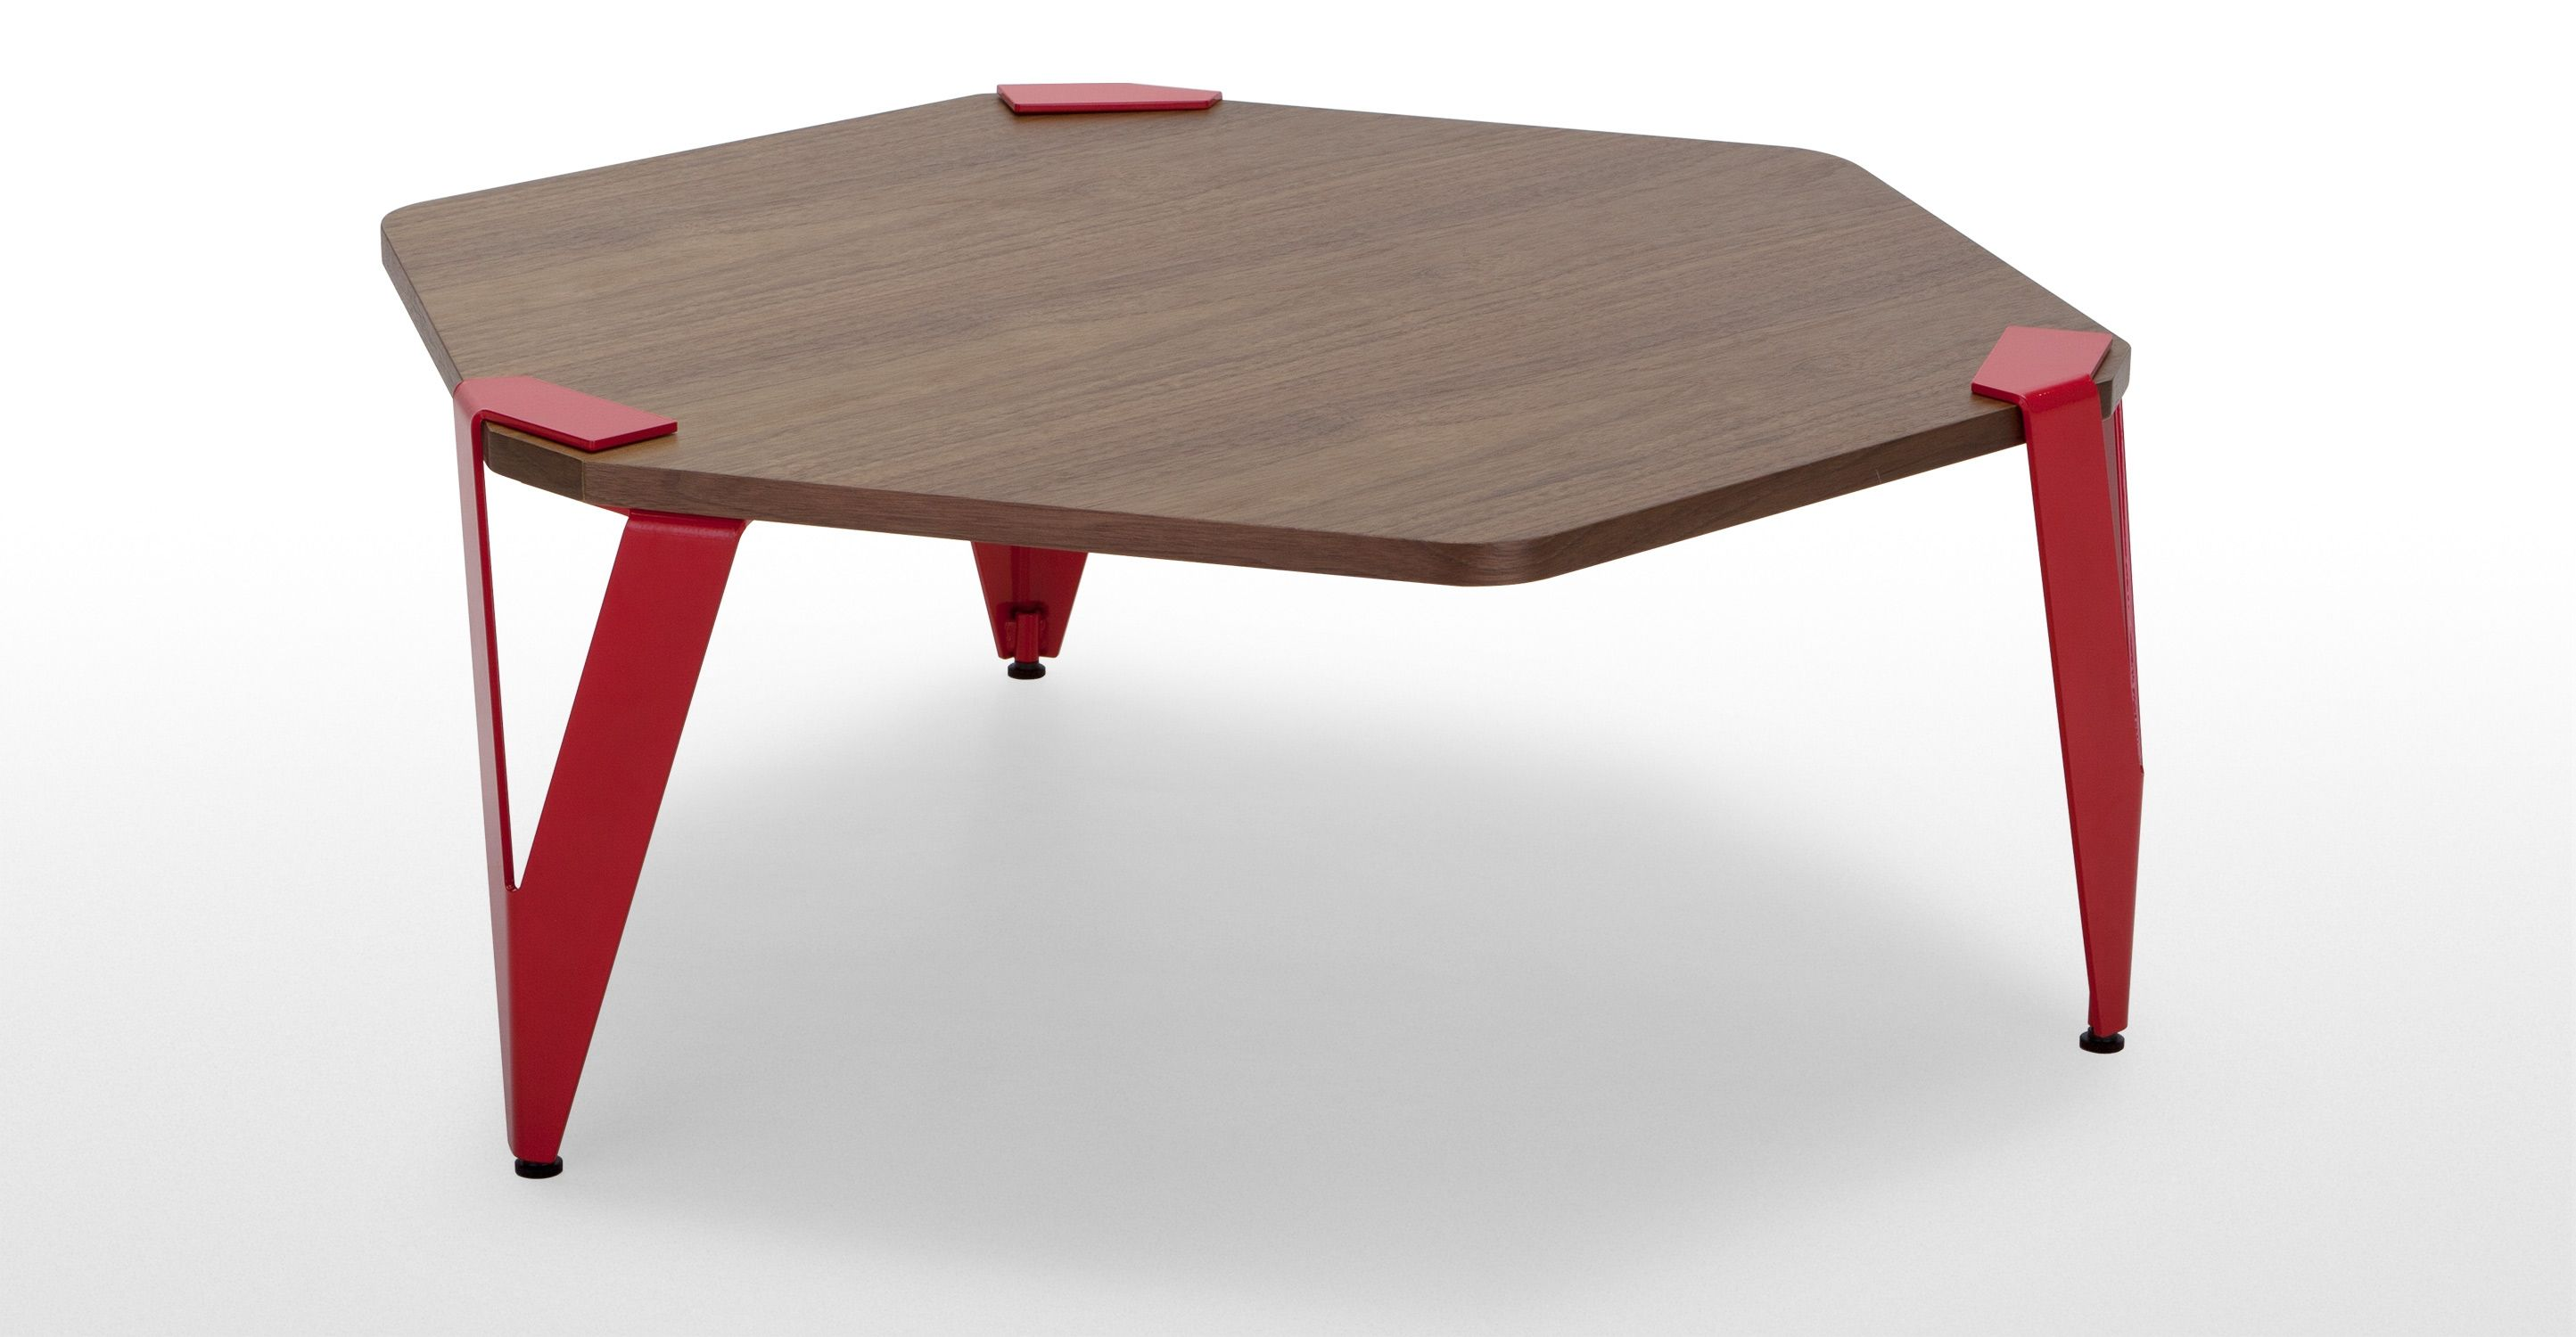 Hexag Une Table Basse Hexagonale Plateau En Noyer